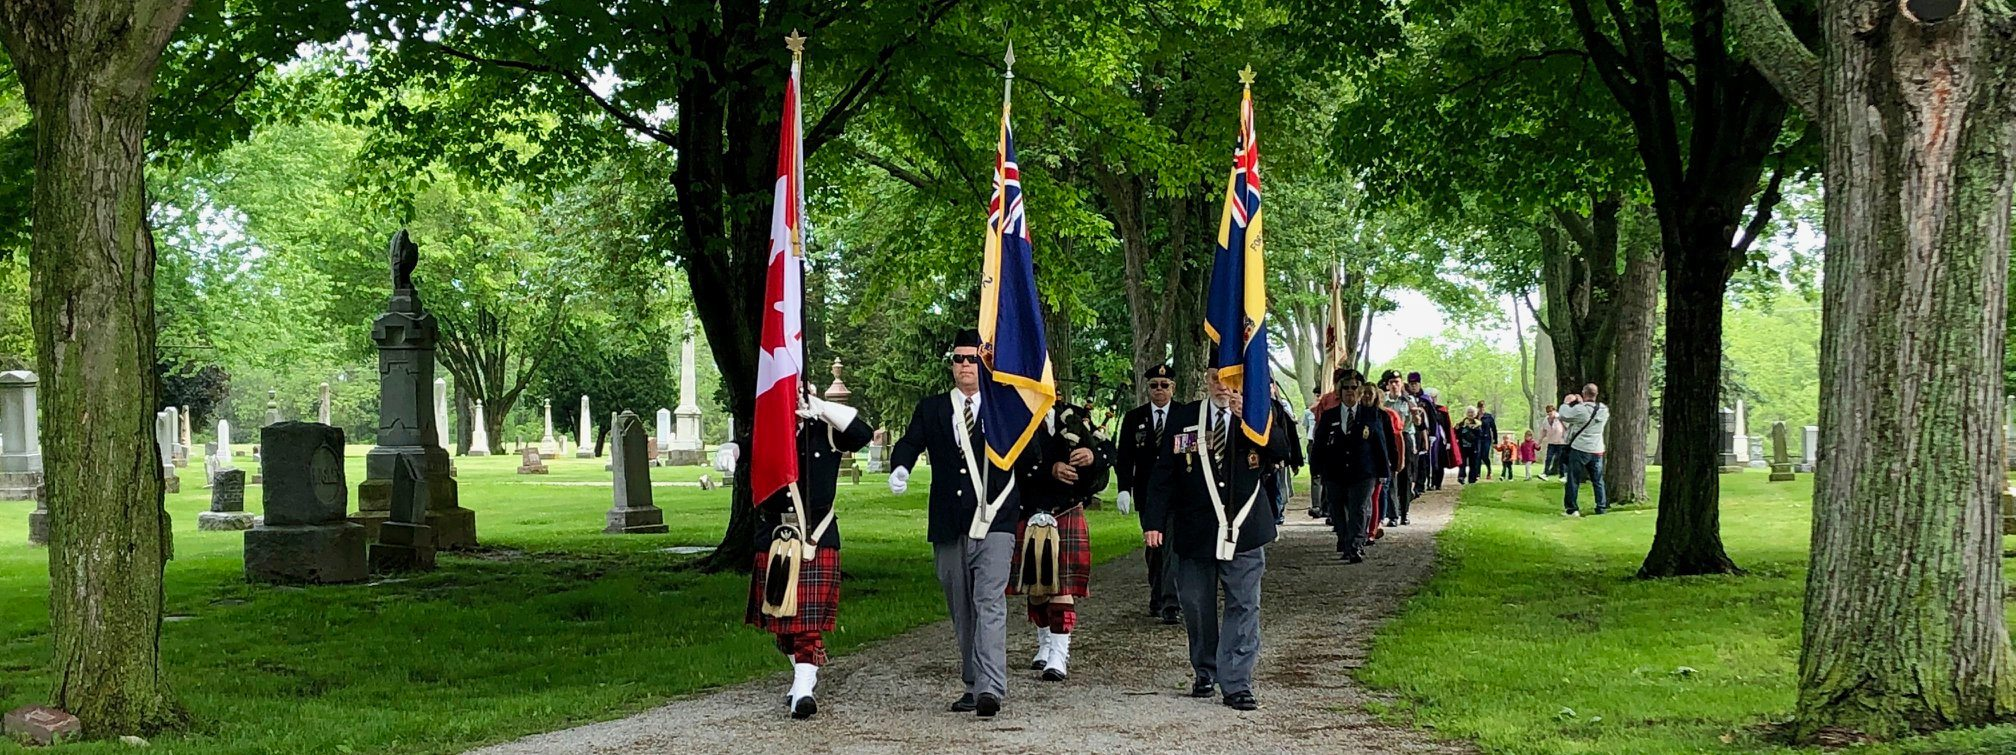 Royal Canadian Legion members march with flags.